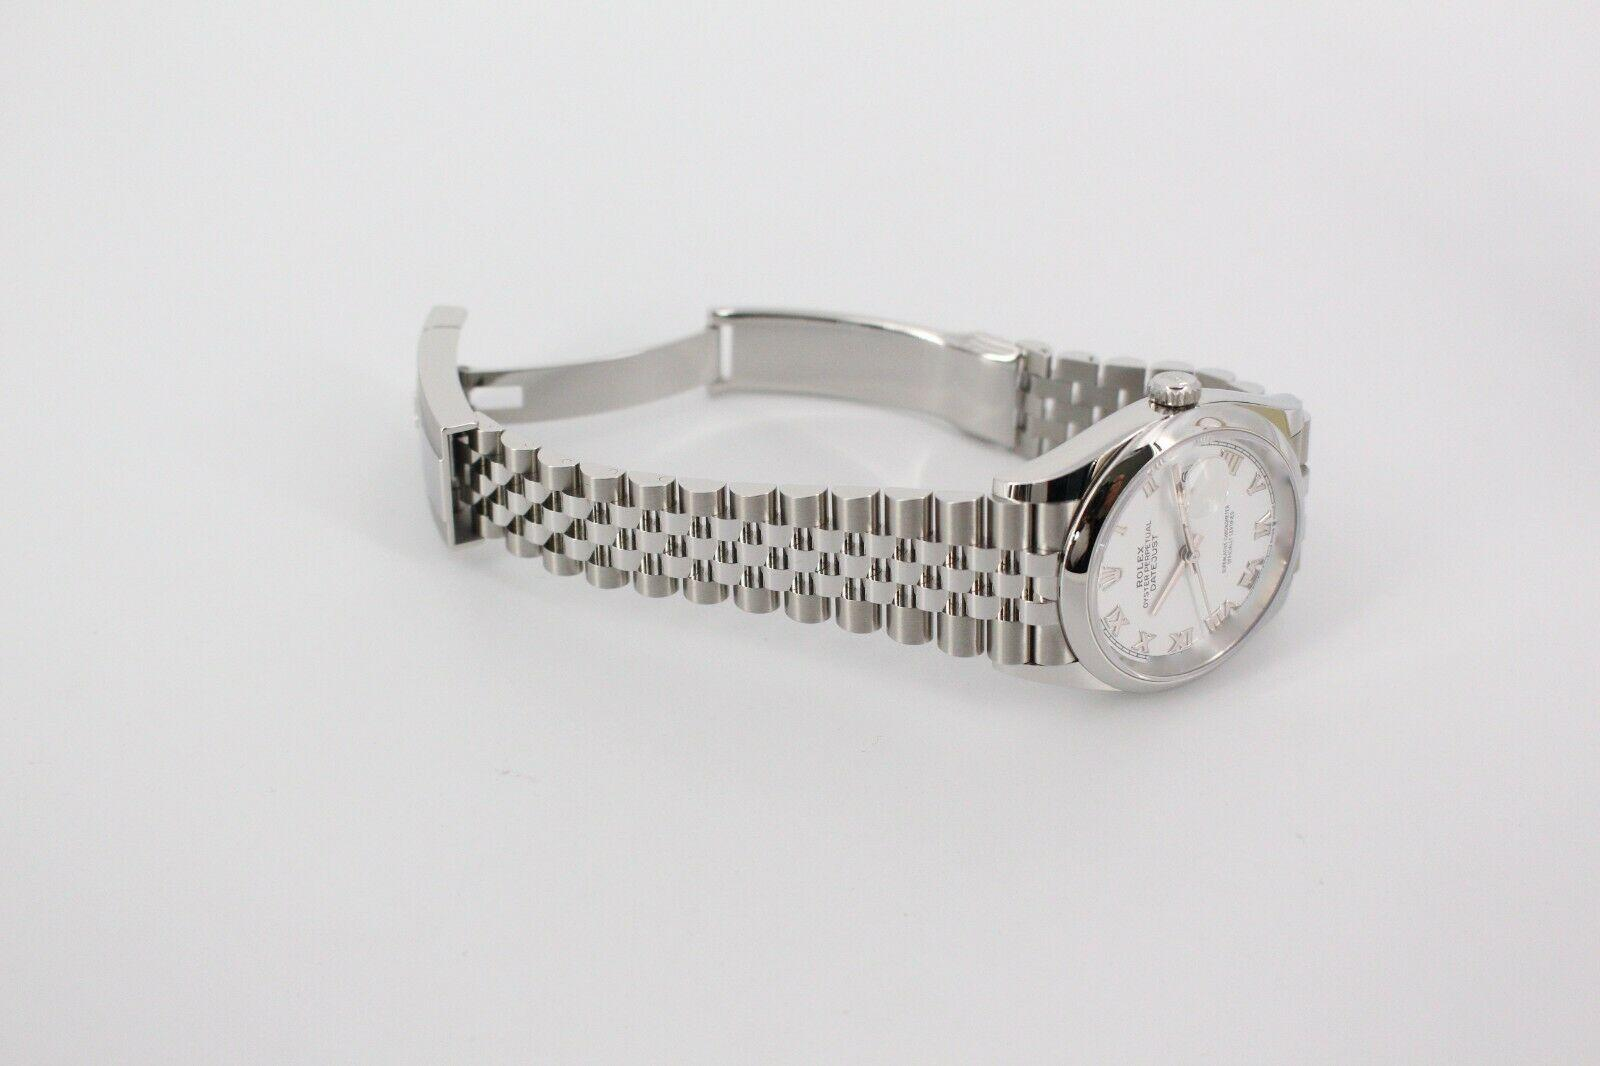 BRAND NEW Rolex Datejust 126200 Si  er Dial Stainless Steel Box Papers 12